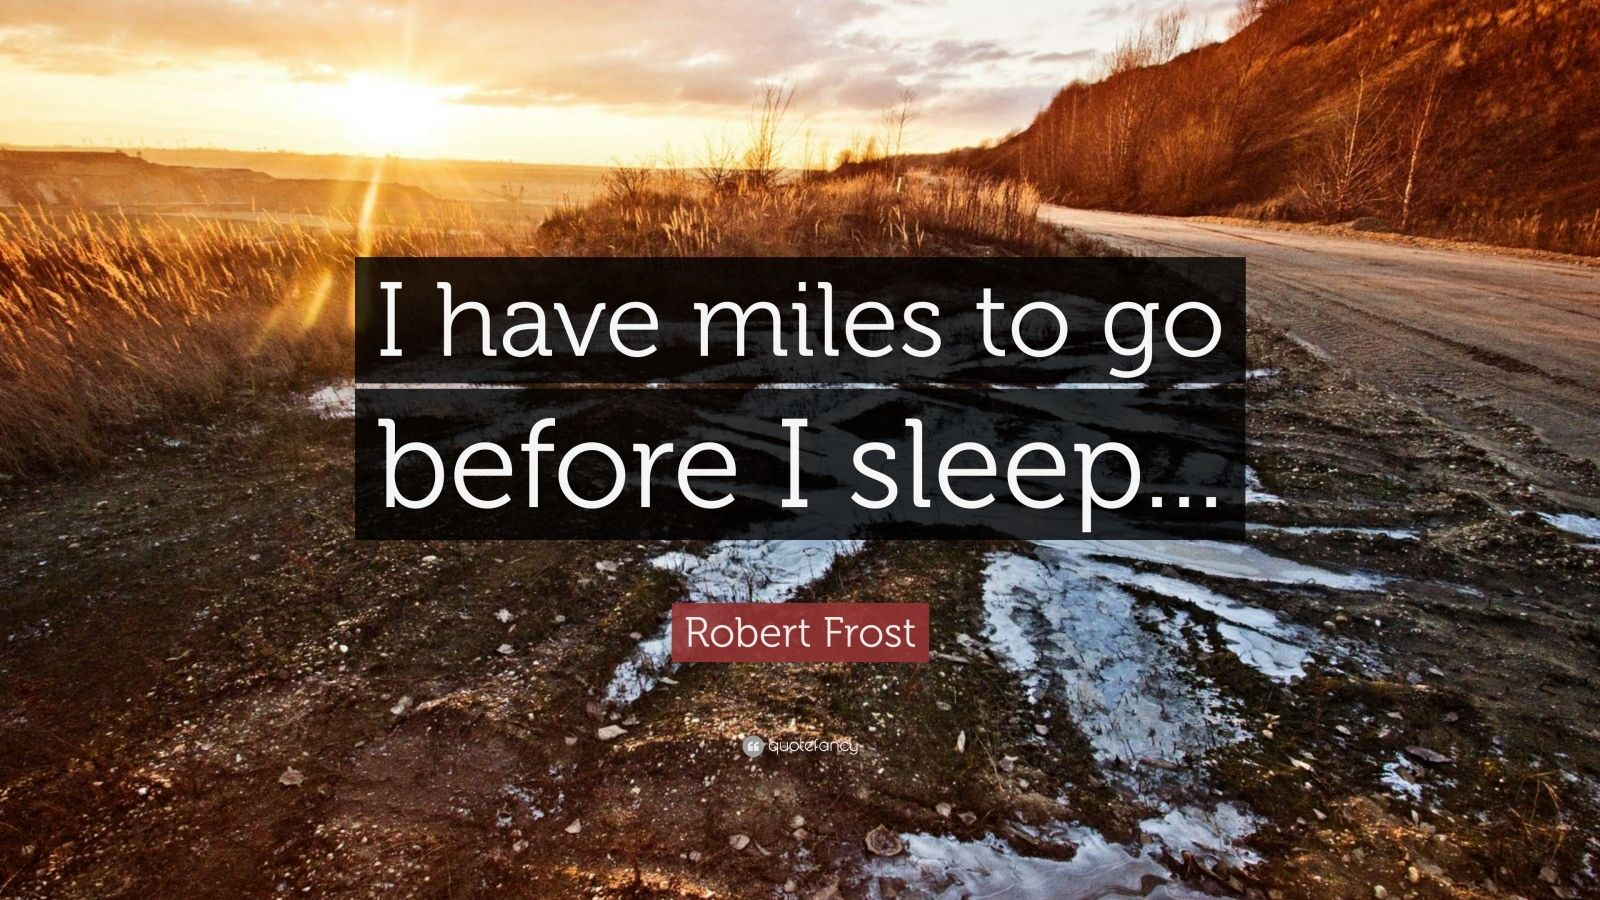 Persistence Quotes Wallpapers Robert Frost Quote I Have Miles To Go Before I Sleep